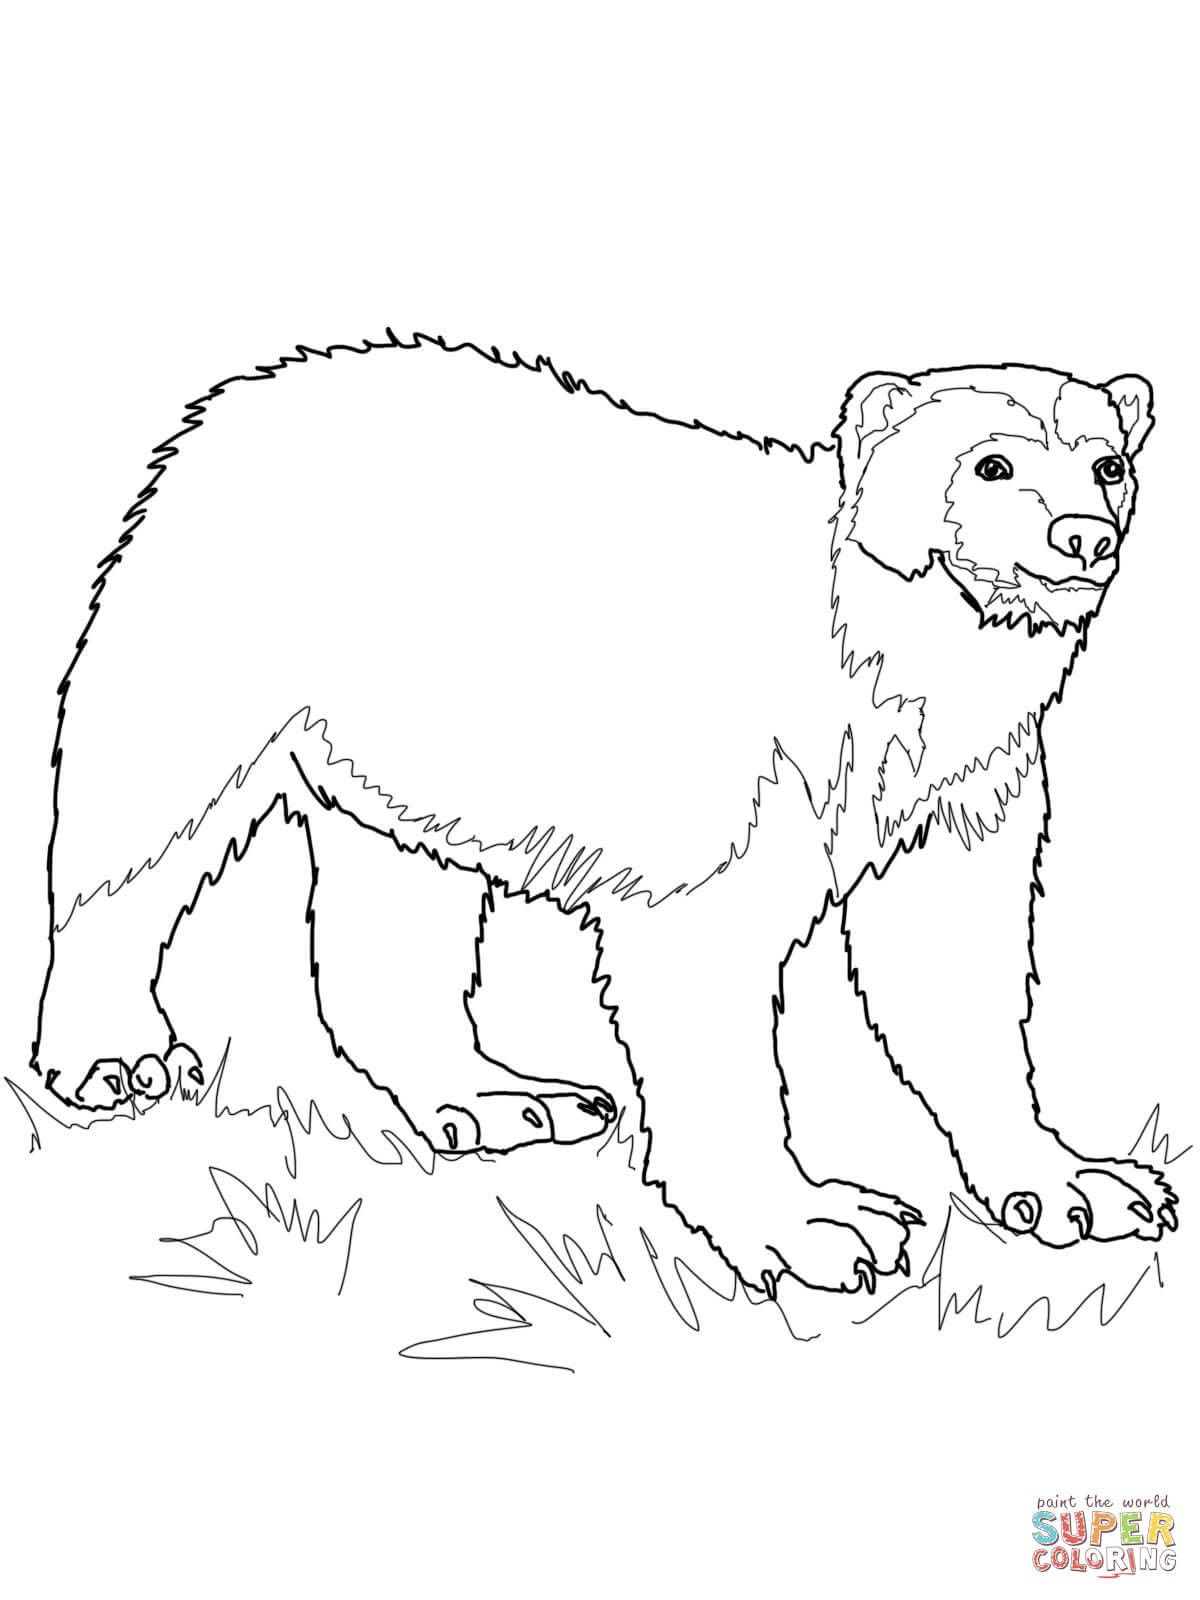 Wolverine Animal Coloring Pages With Images Animal Coloring